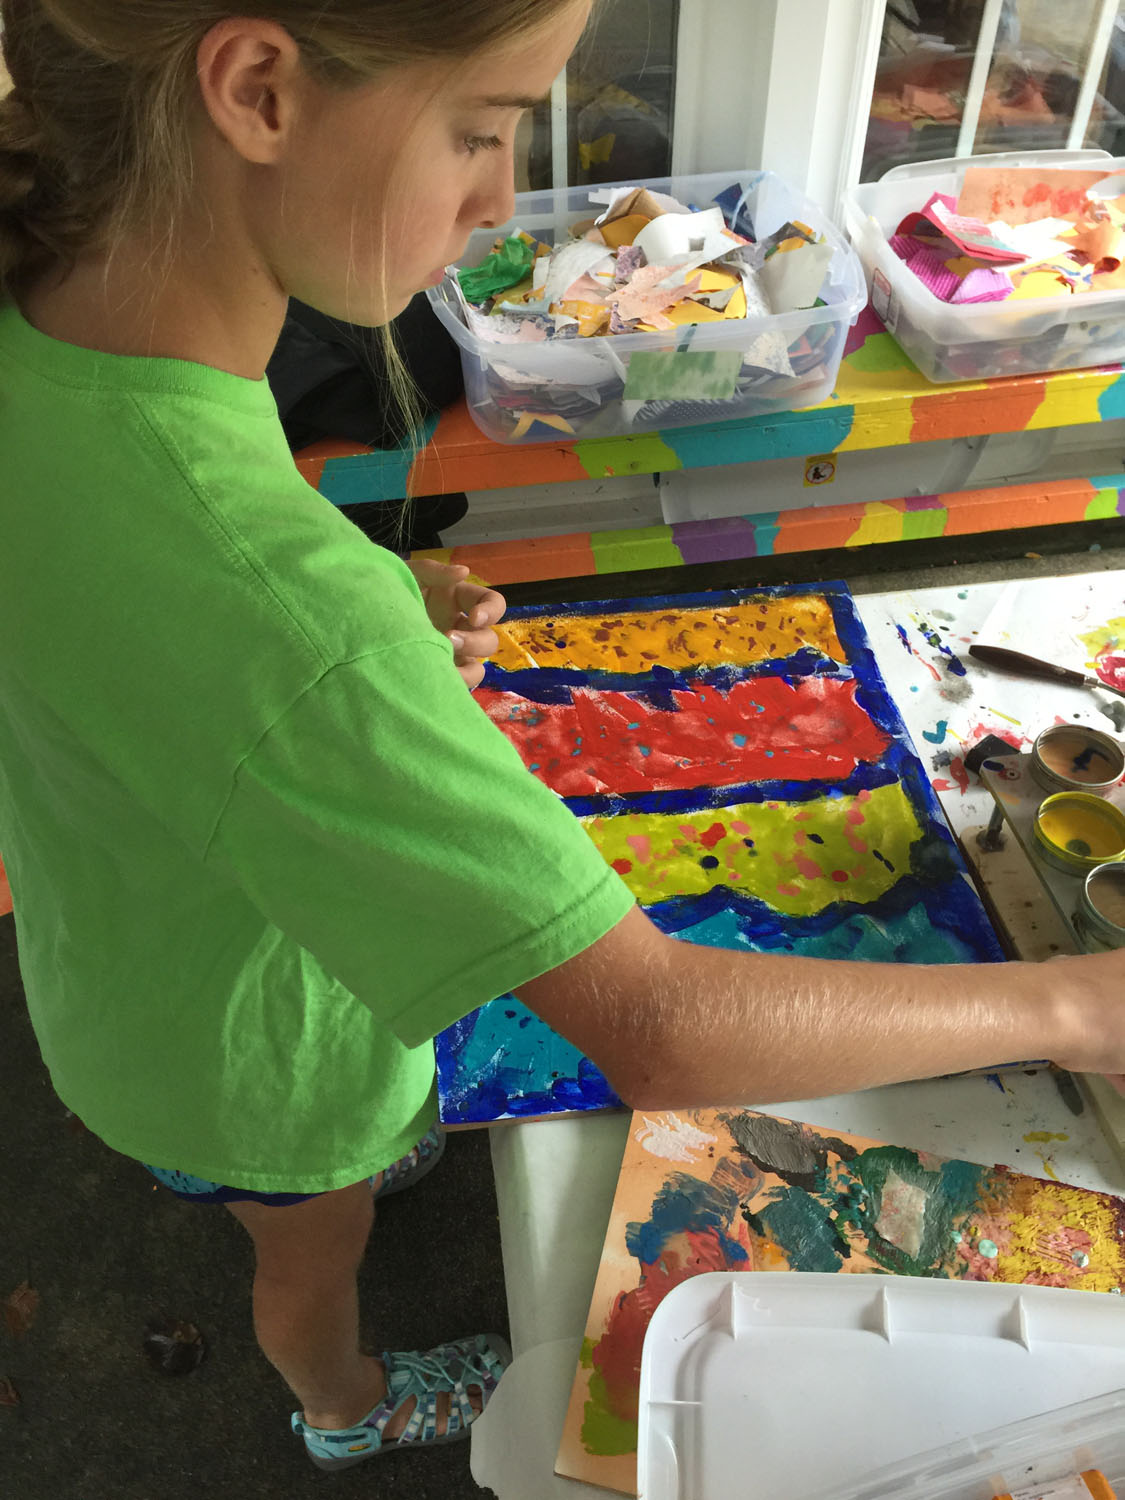 making-art-at-tracey-marshall-studio-greensboro-nc-art-classes-kids-and-adults-IMG_0232.jpg